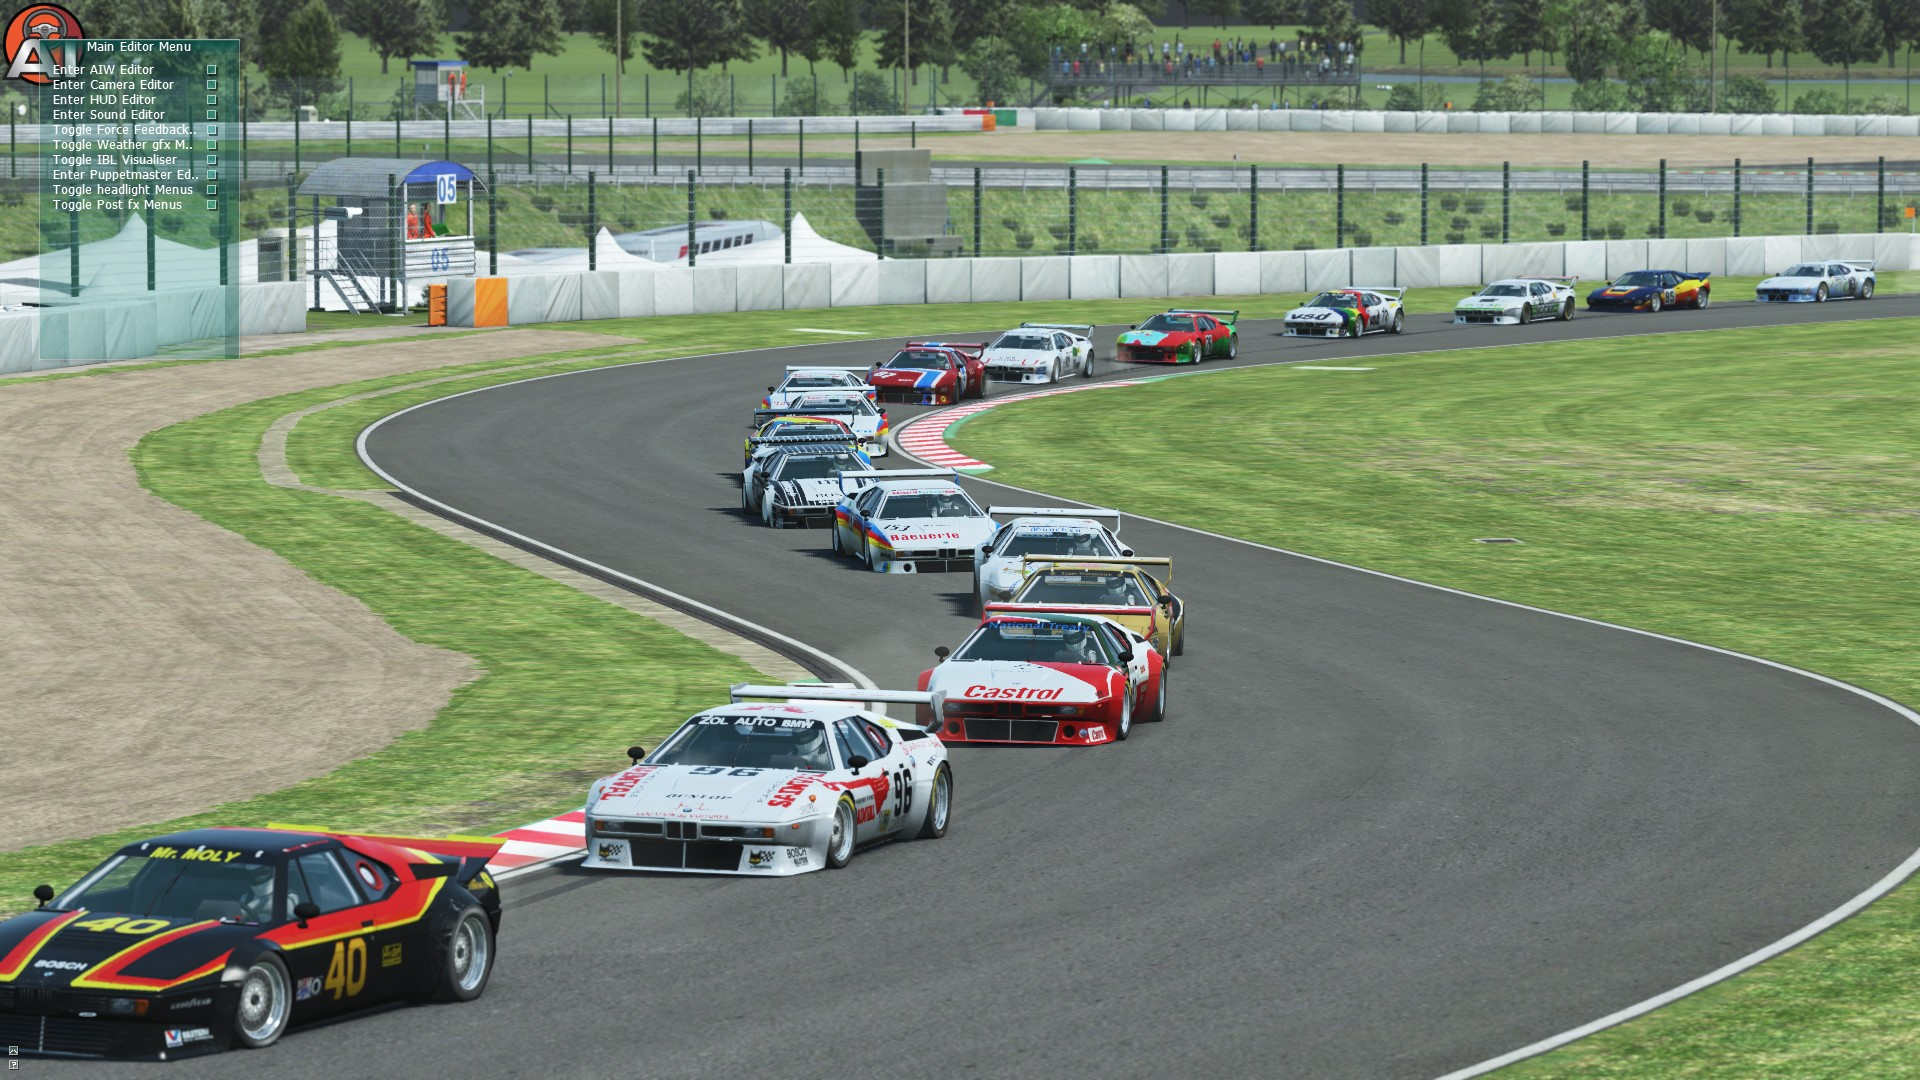 GRAB-034 GTPC 1984 for rFactor 2 – First BMW M1 Previews